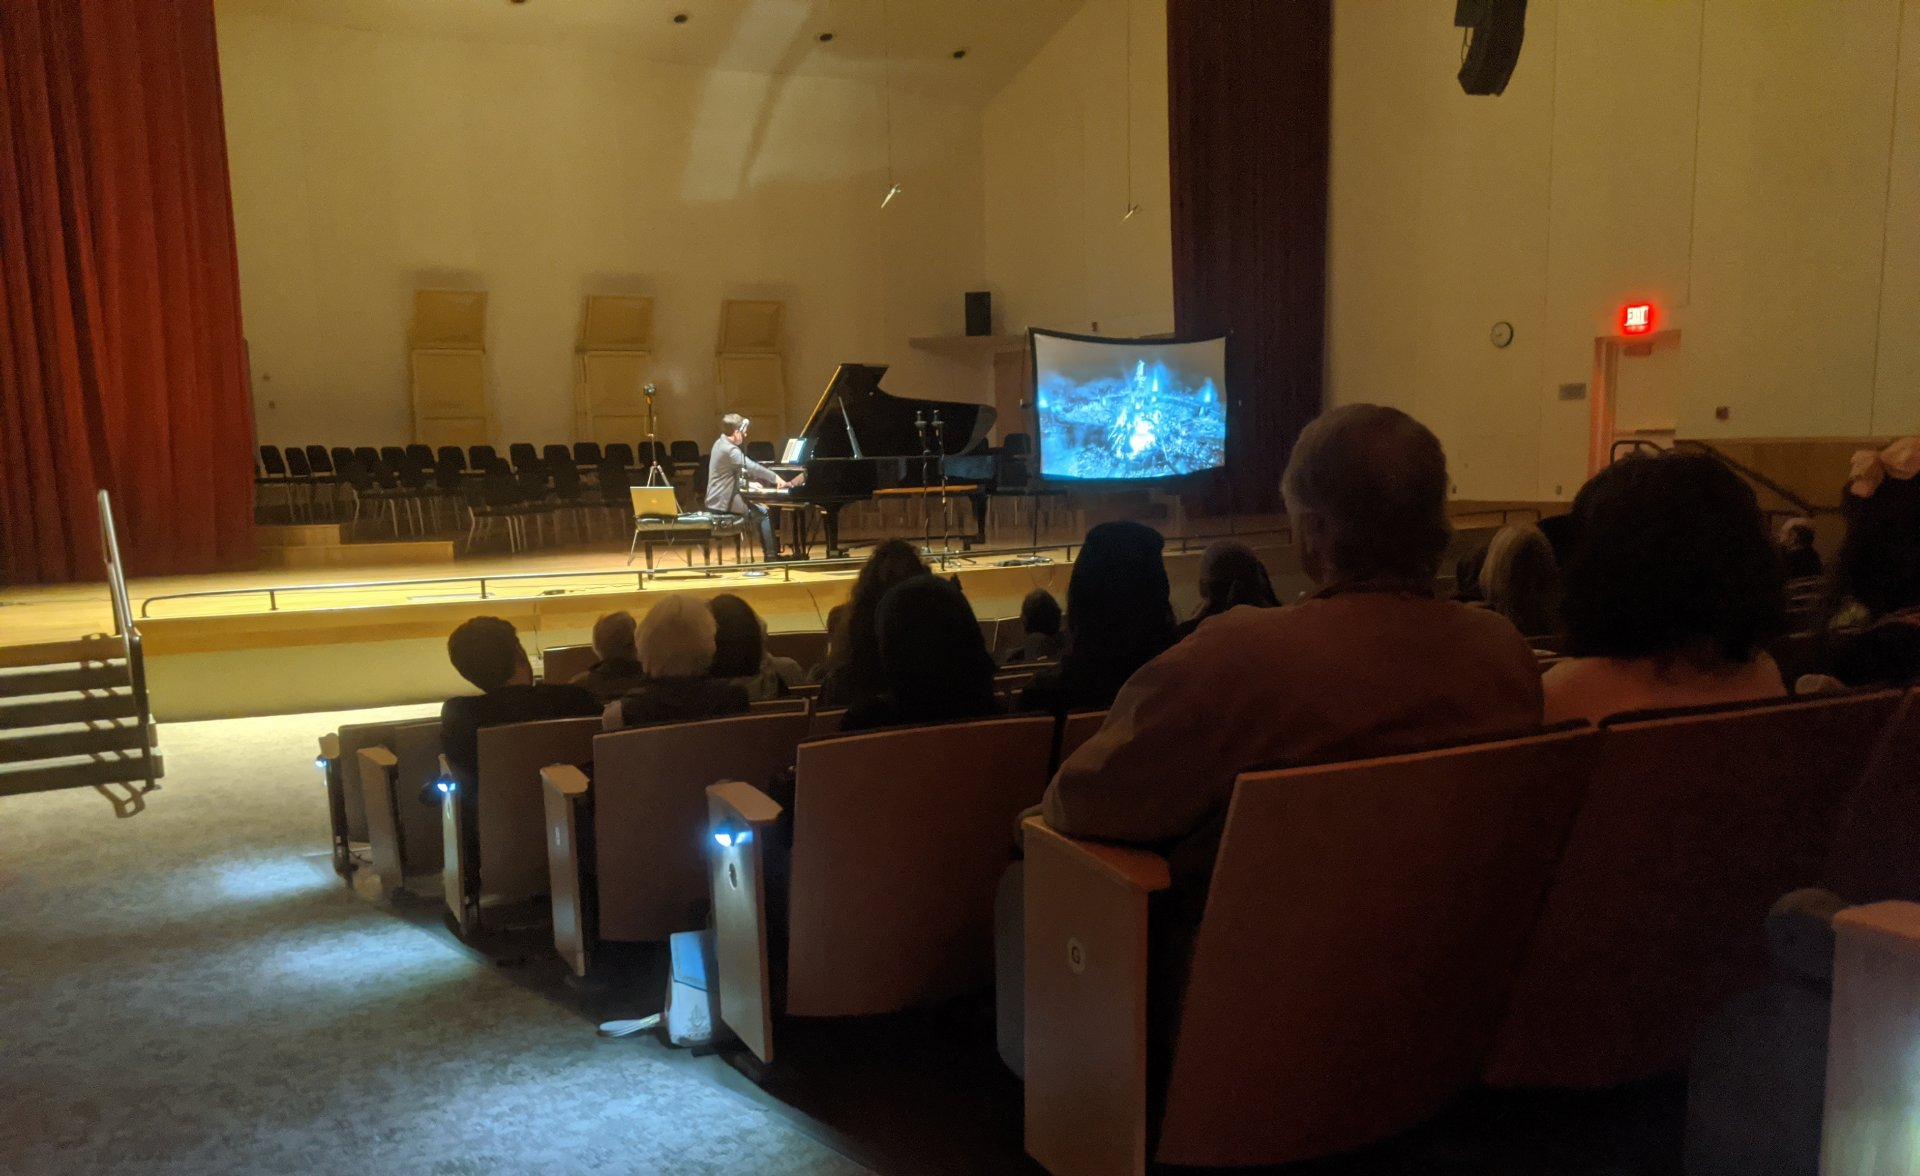 Ryan McGaughey playing songs from Final Fantasy VII arranged for piano by Shiro Hamaguchi in Fulkerson Recital Hall Feb. 21. The projector beside McGaughey cycled through footage form the Final Fantasy games and movie. | Photo by Walker B. True